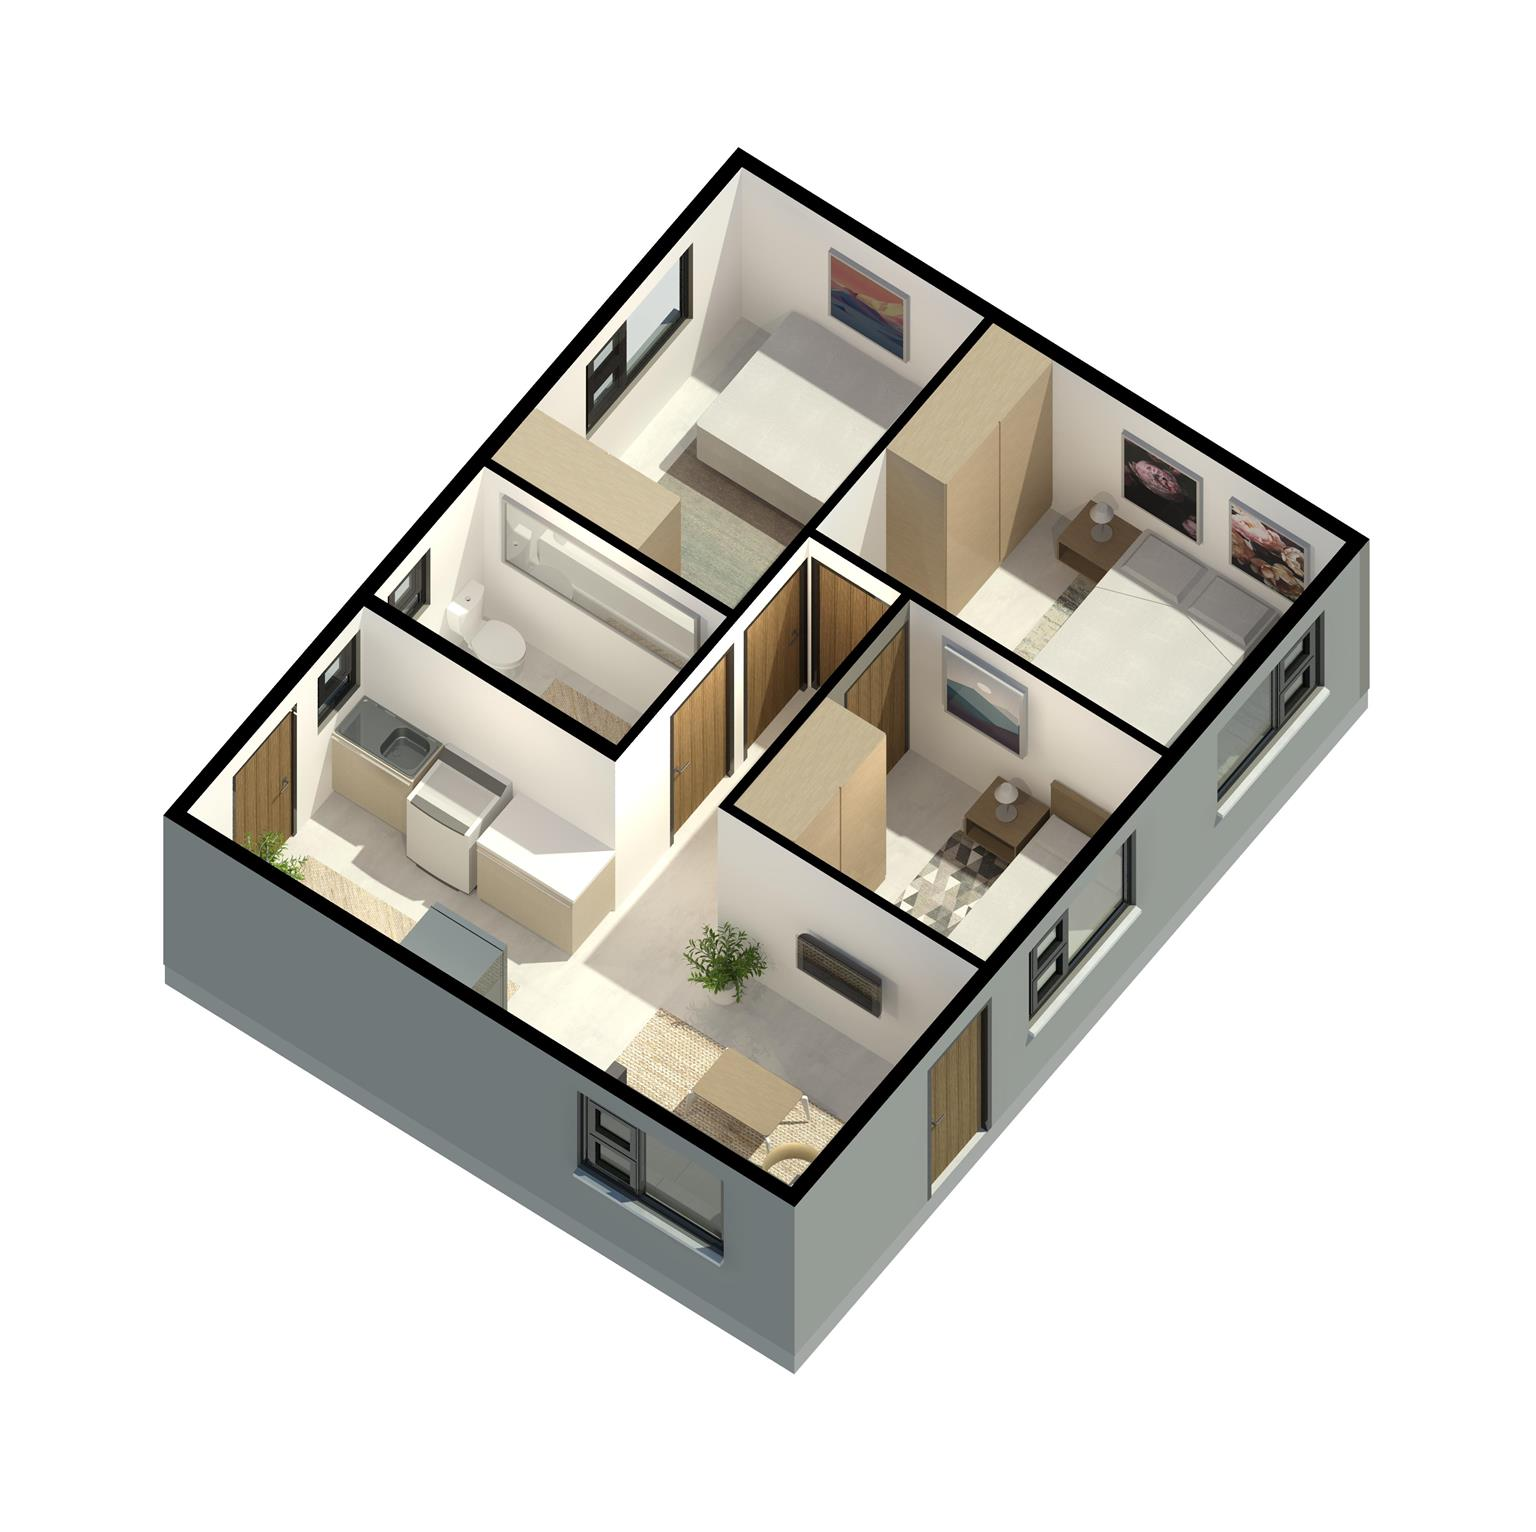 3 Bedroom house With KM HOUSING owning your dream home is possible!